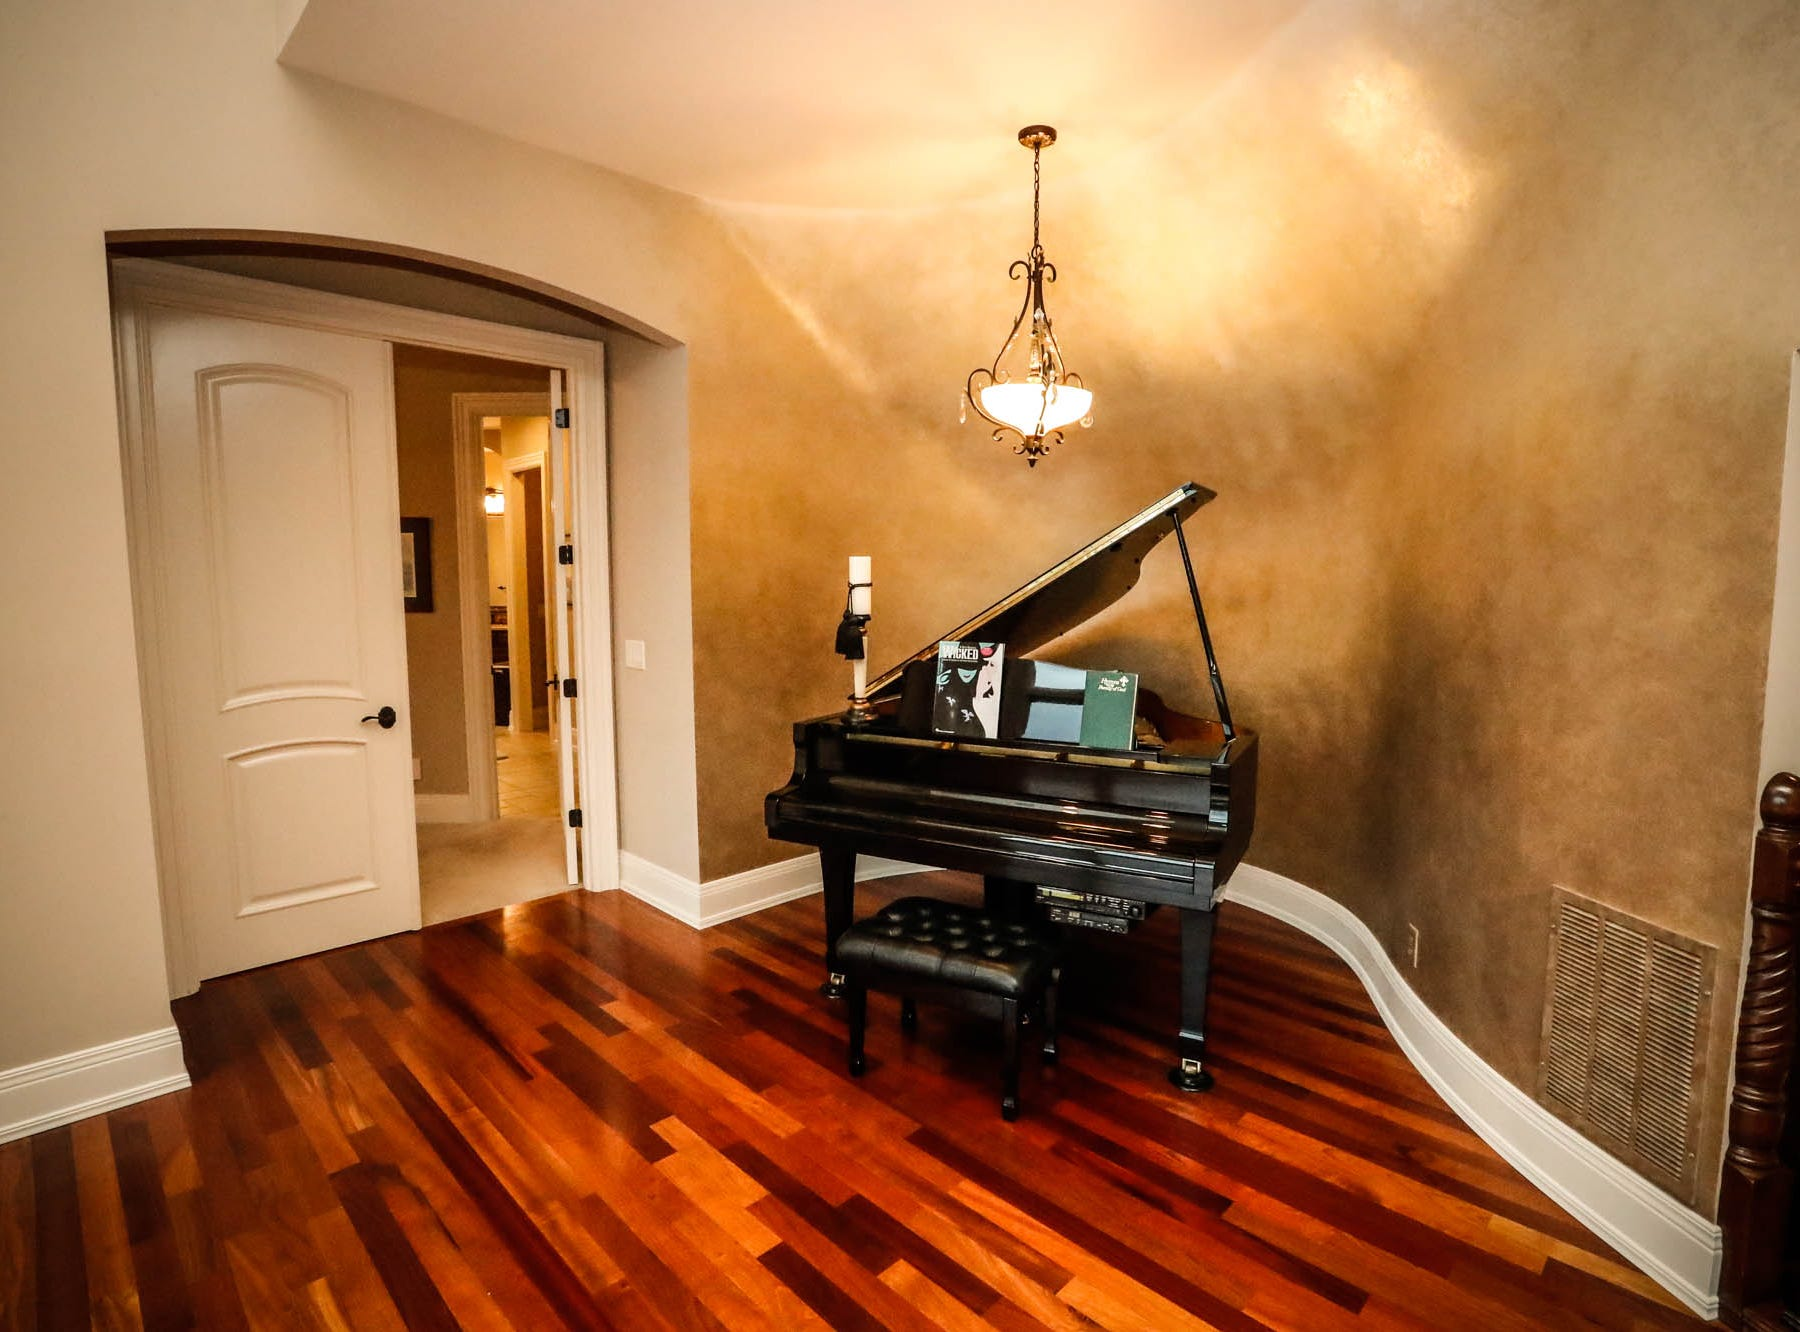 A custom player piano sits in a purpose-built nook in a  traditional $2m home with elements of French country and Tuscan influence up for sale in Bargersville Ind. on Wednesday, Jan. 9, 2019. The house sits on 8.1 acres.